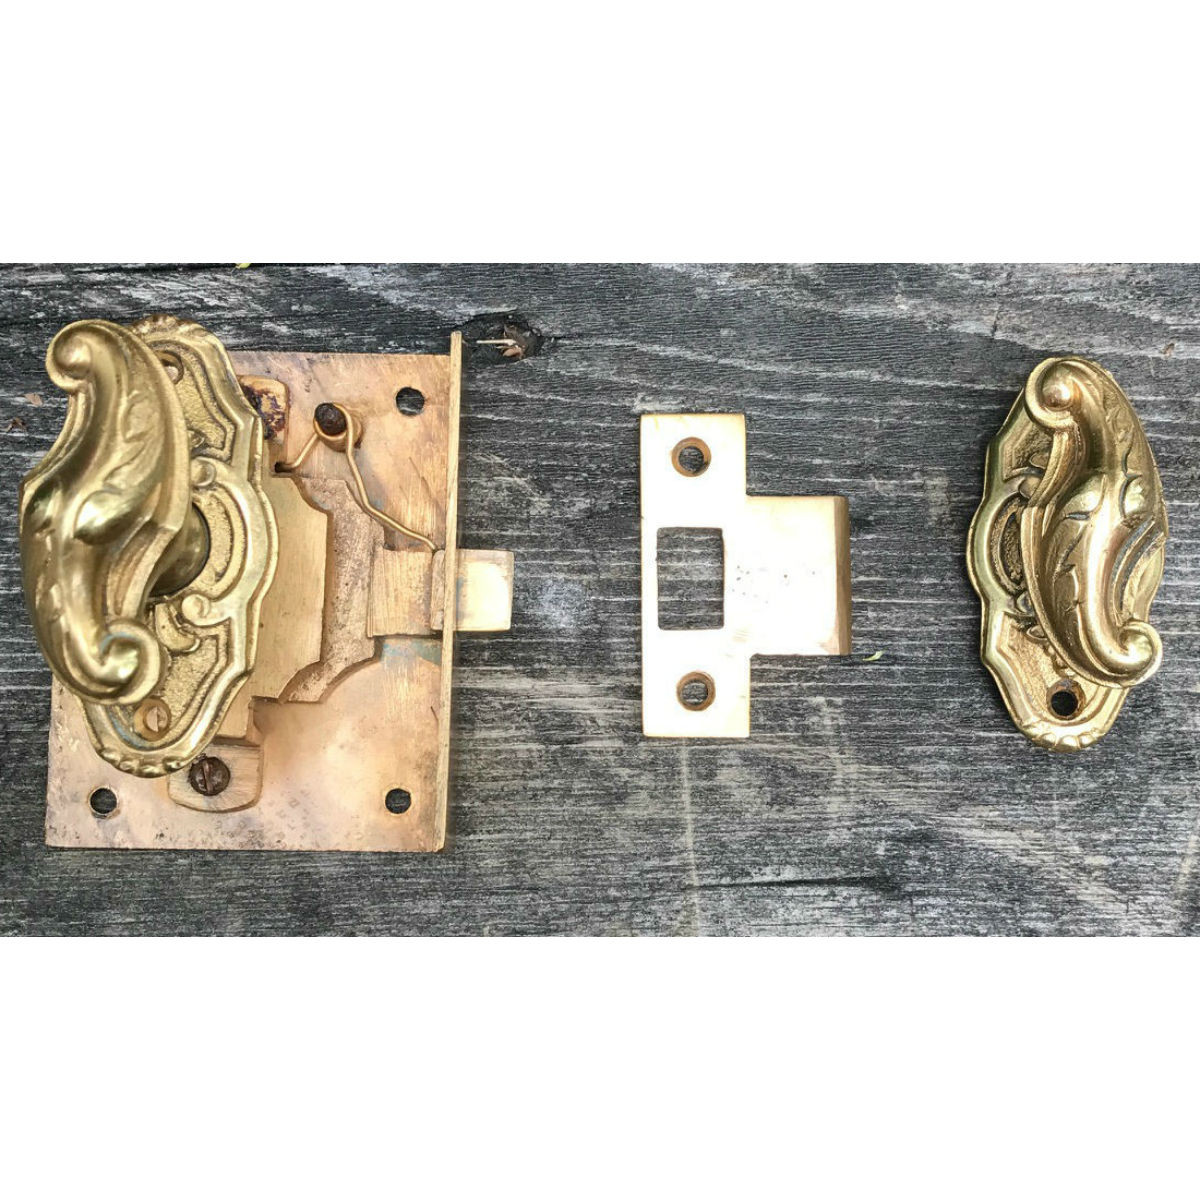 H17008 - Antique Neoclassical Style P. E. Guerin Cabinet Latch Set